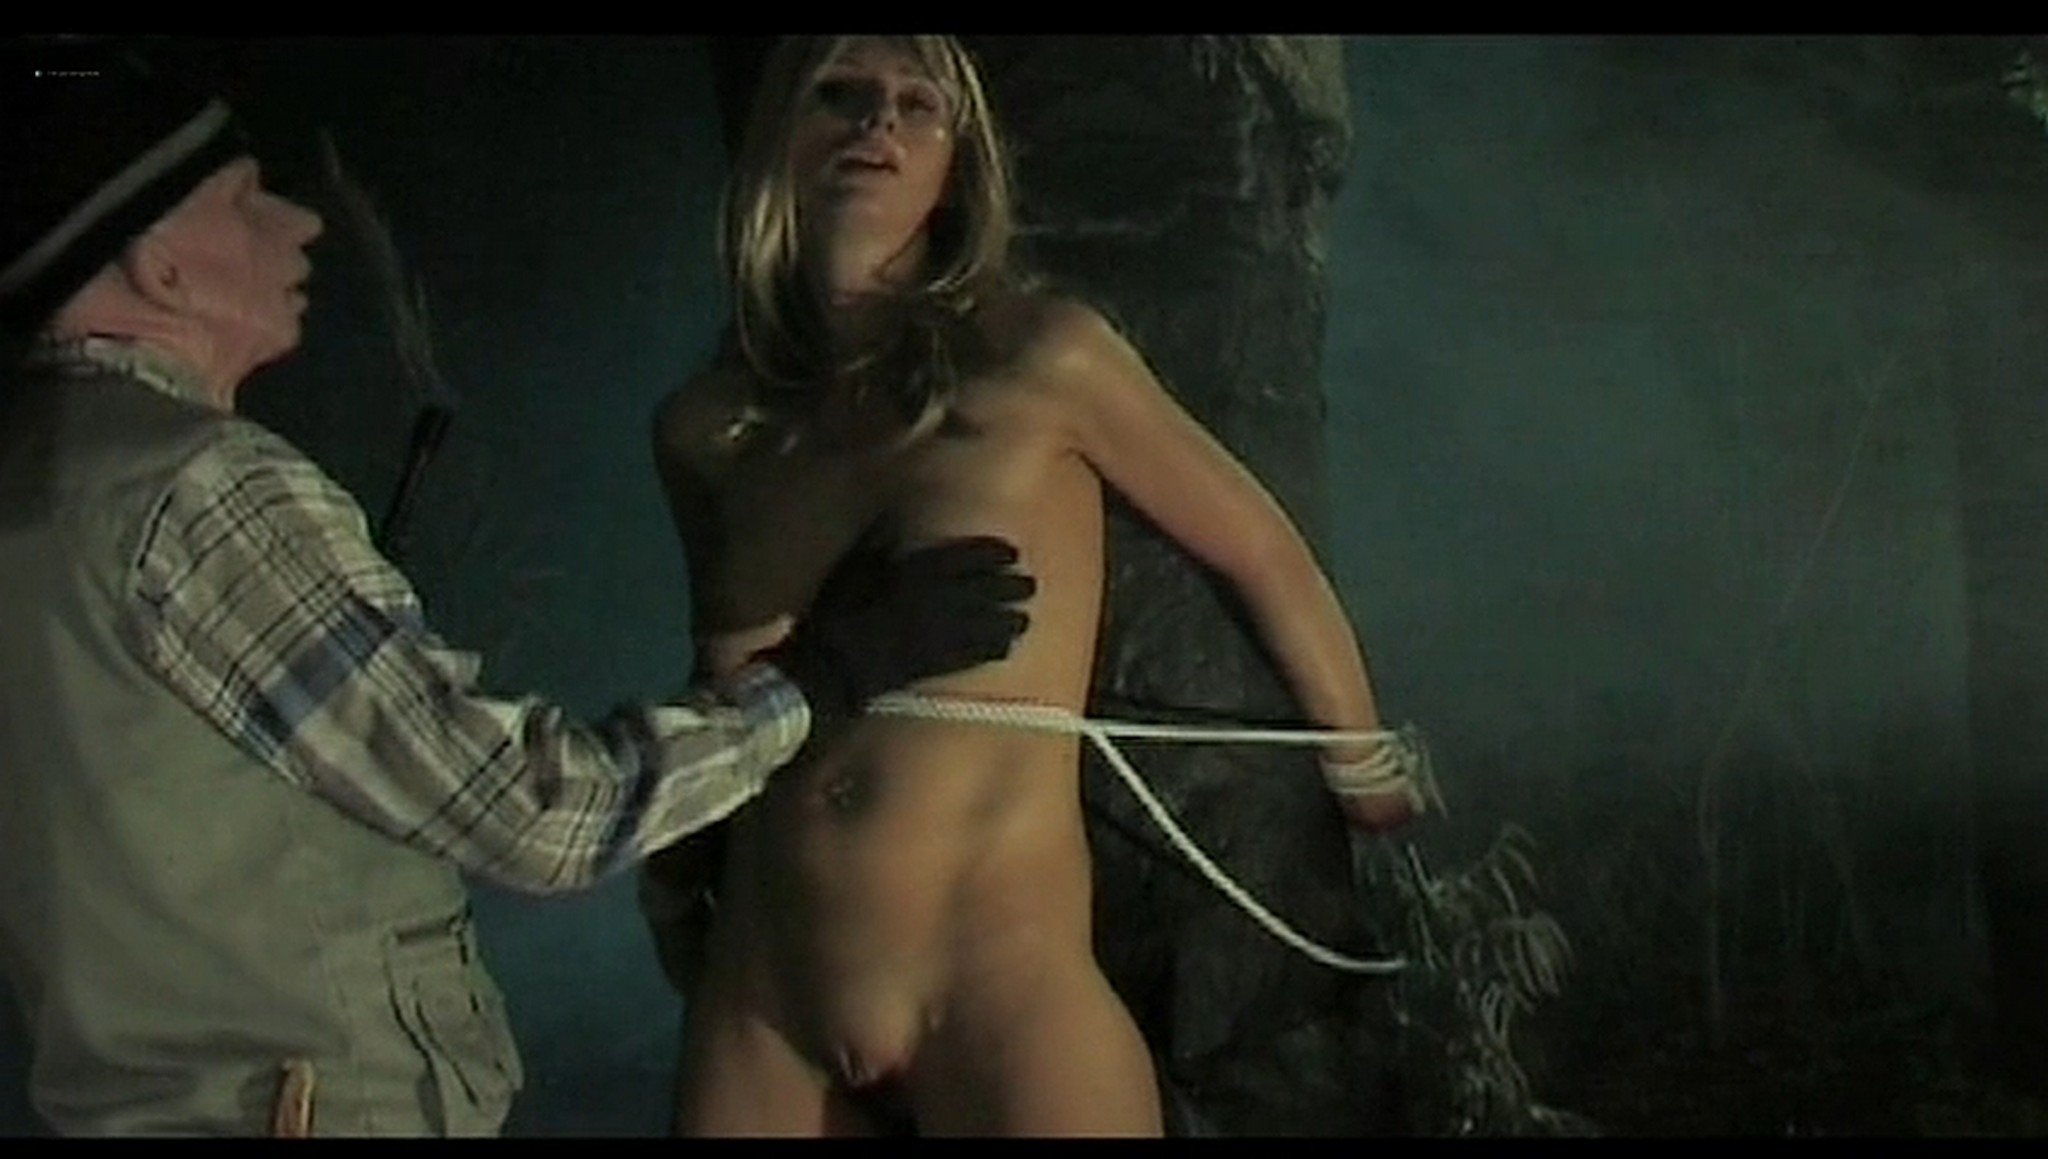 Sonja Karina nude Eliza Borecka nude labia Abducted by the Daleks 2005 17